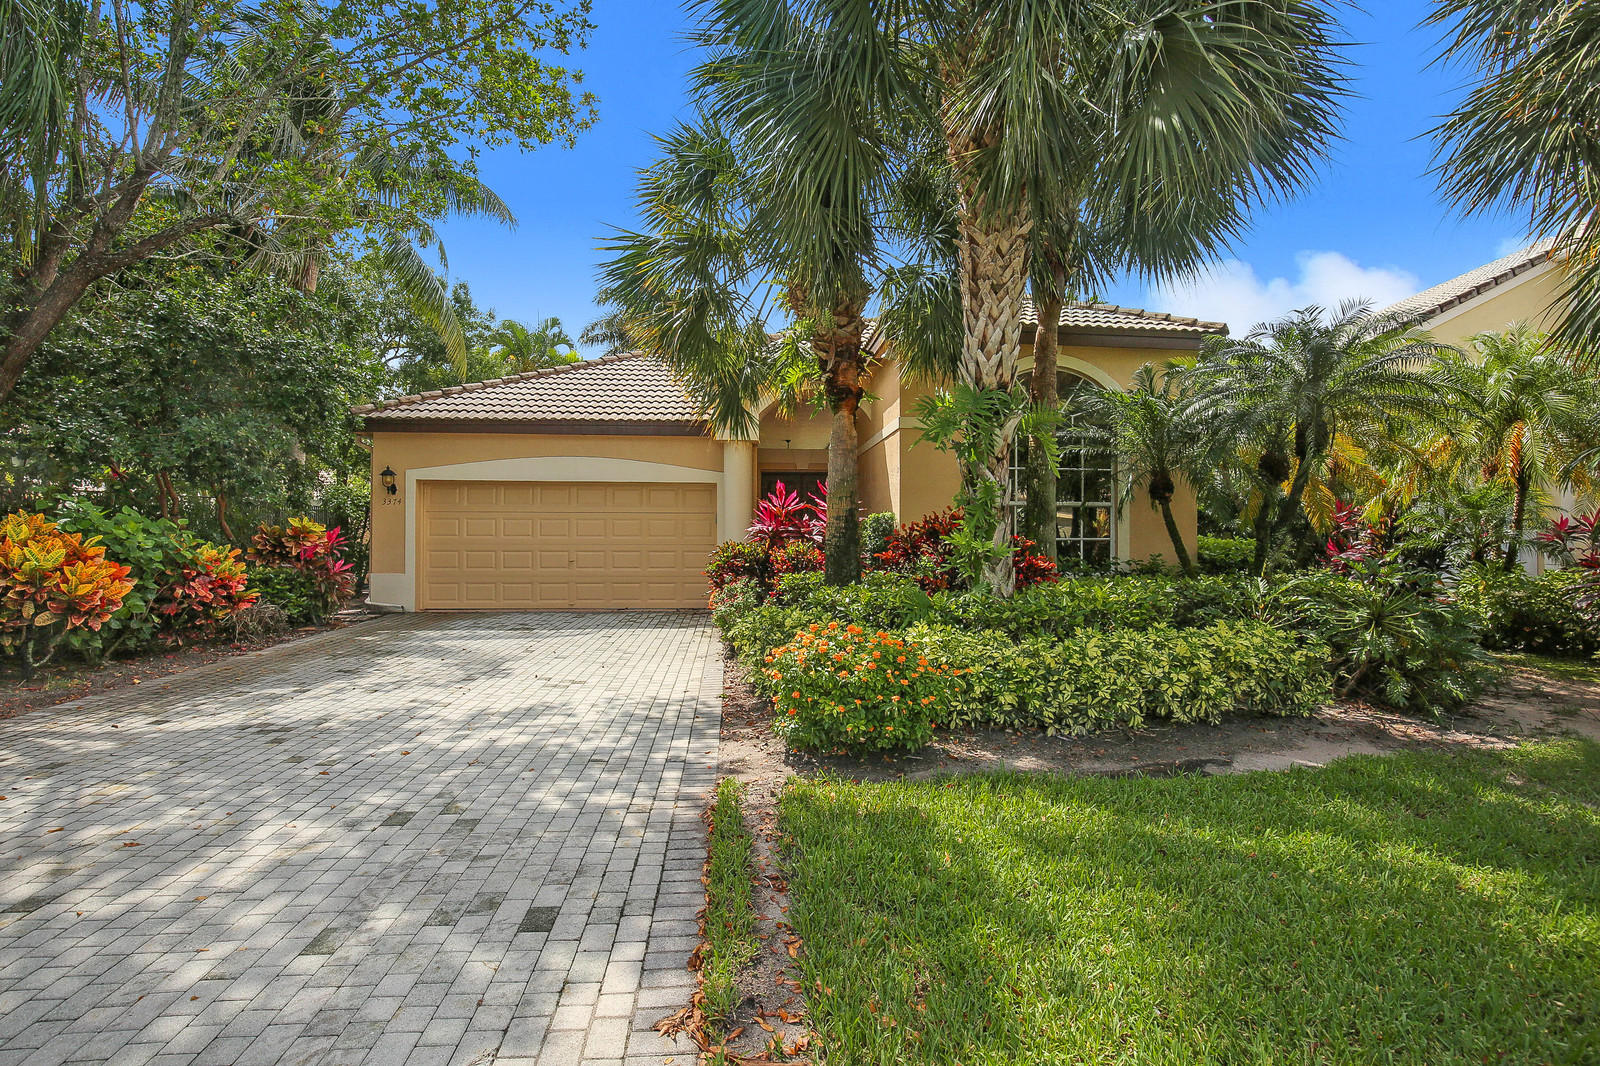 3374 53rd Circle, Boca Raton, Florida 33496, 5 Bedrooms Bedrooms, ,3.1 BathroomsBathrooms,Single Family,For Sale,Woodfield Country Club,53rd,RX-10435757